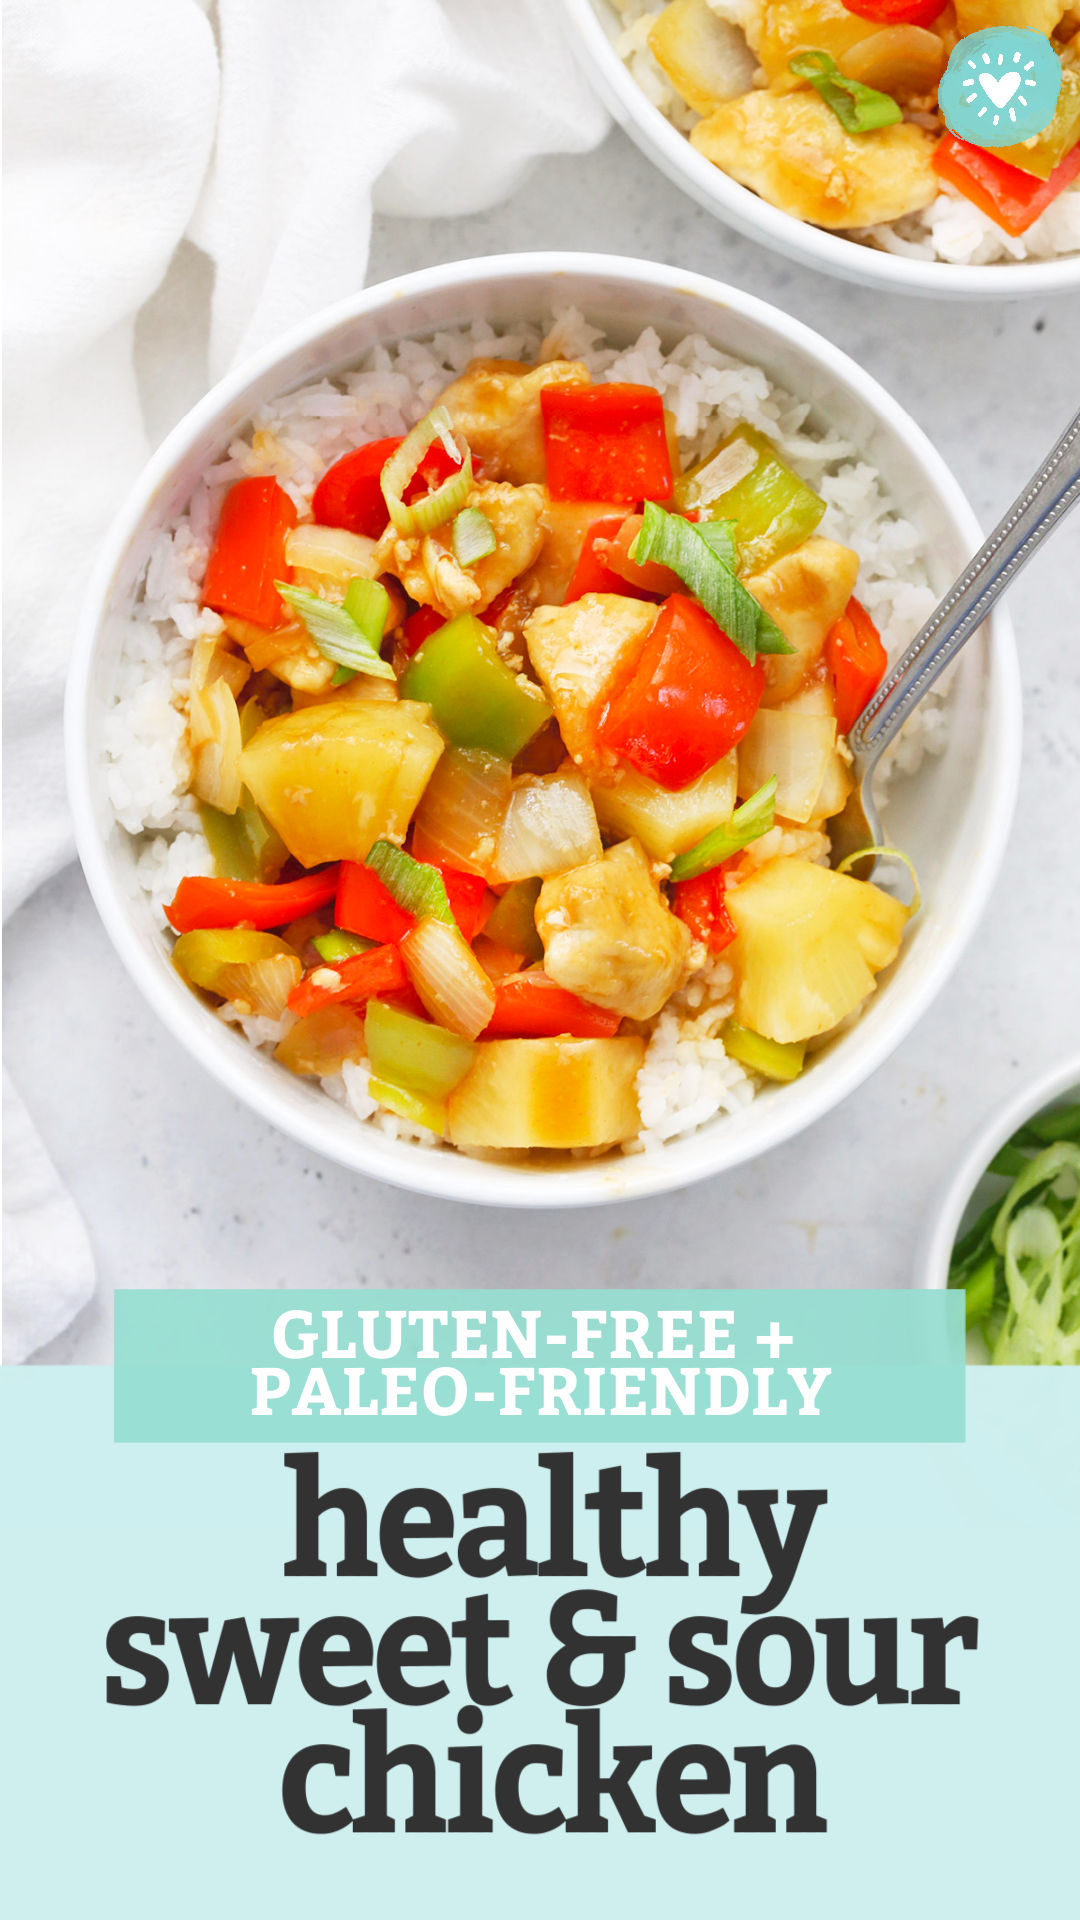 "Paleo-Friendly Healthy Sweet and Sour Chicken in a white bowl on a white background with text overlay that says ""Gluten-Free + Paleo-Friendly Healthy Sweet & Sour Chicken"""